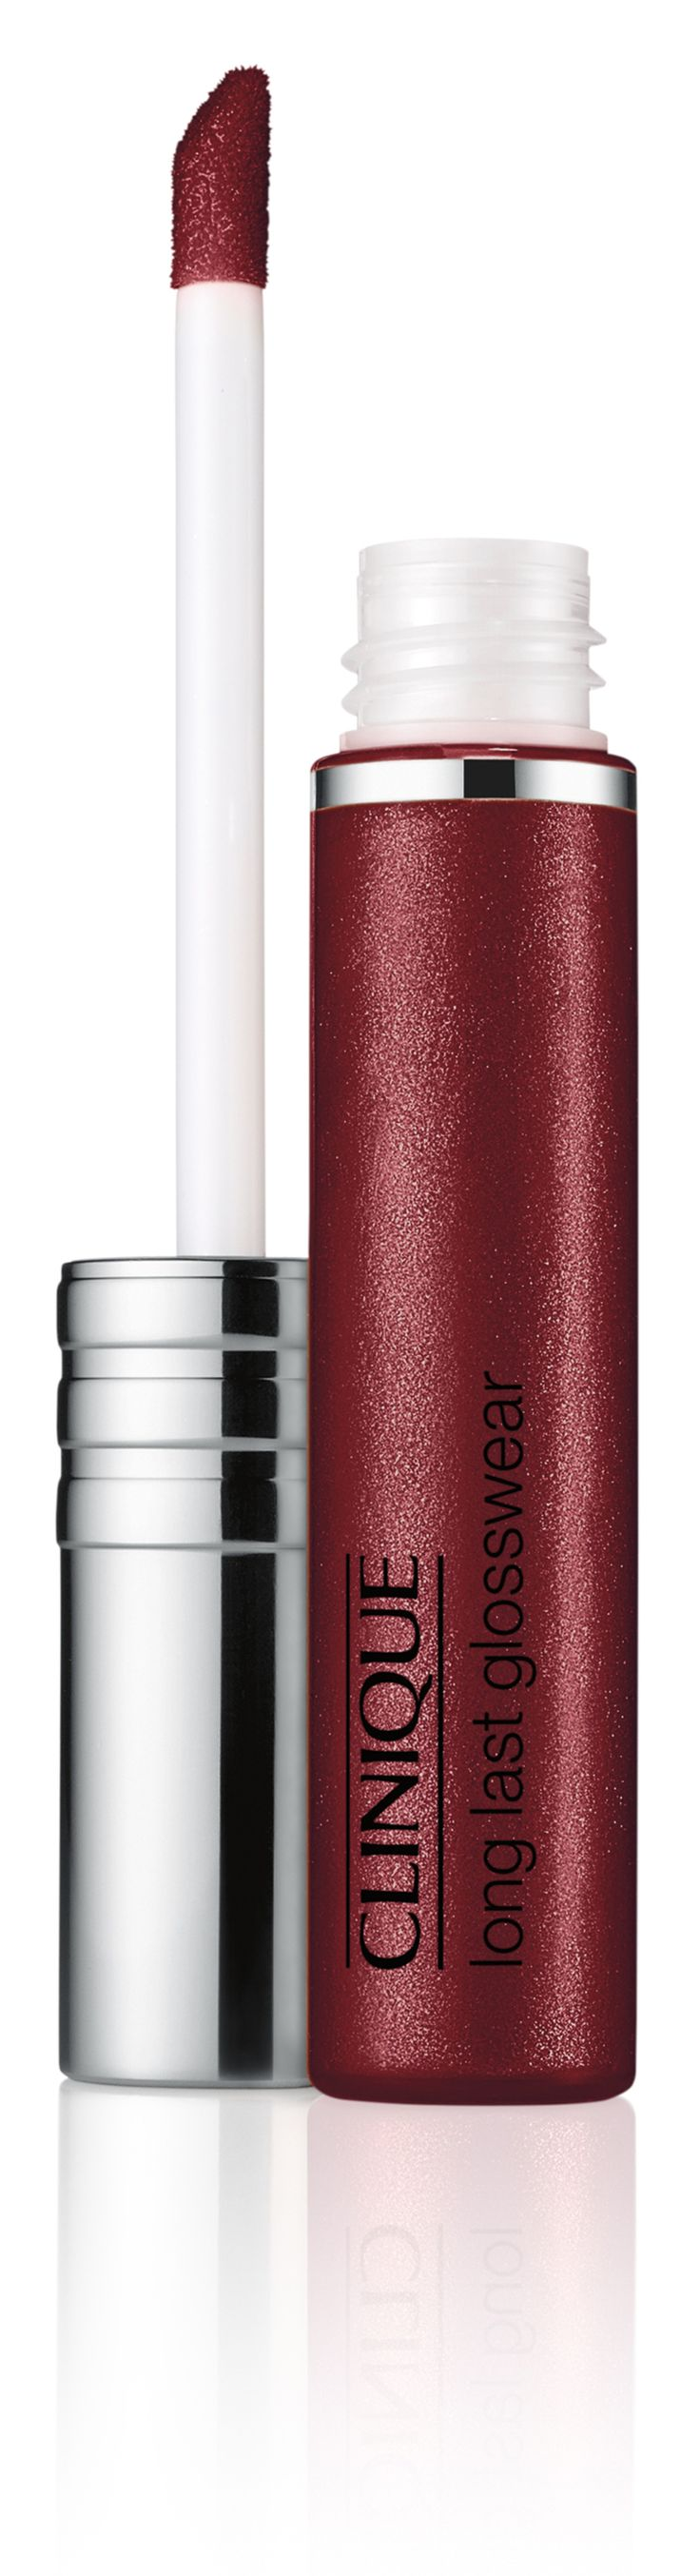 Fall Makeup Trend: Berry Lips. Get the look with Clinique Long Last Glosswear in Hooked On You. Lip gloss juiced up with 8 hours of lasting shine.